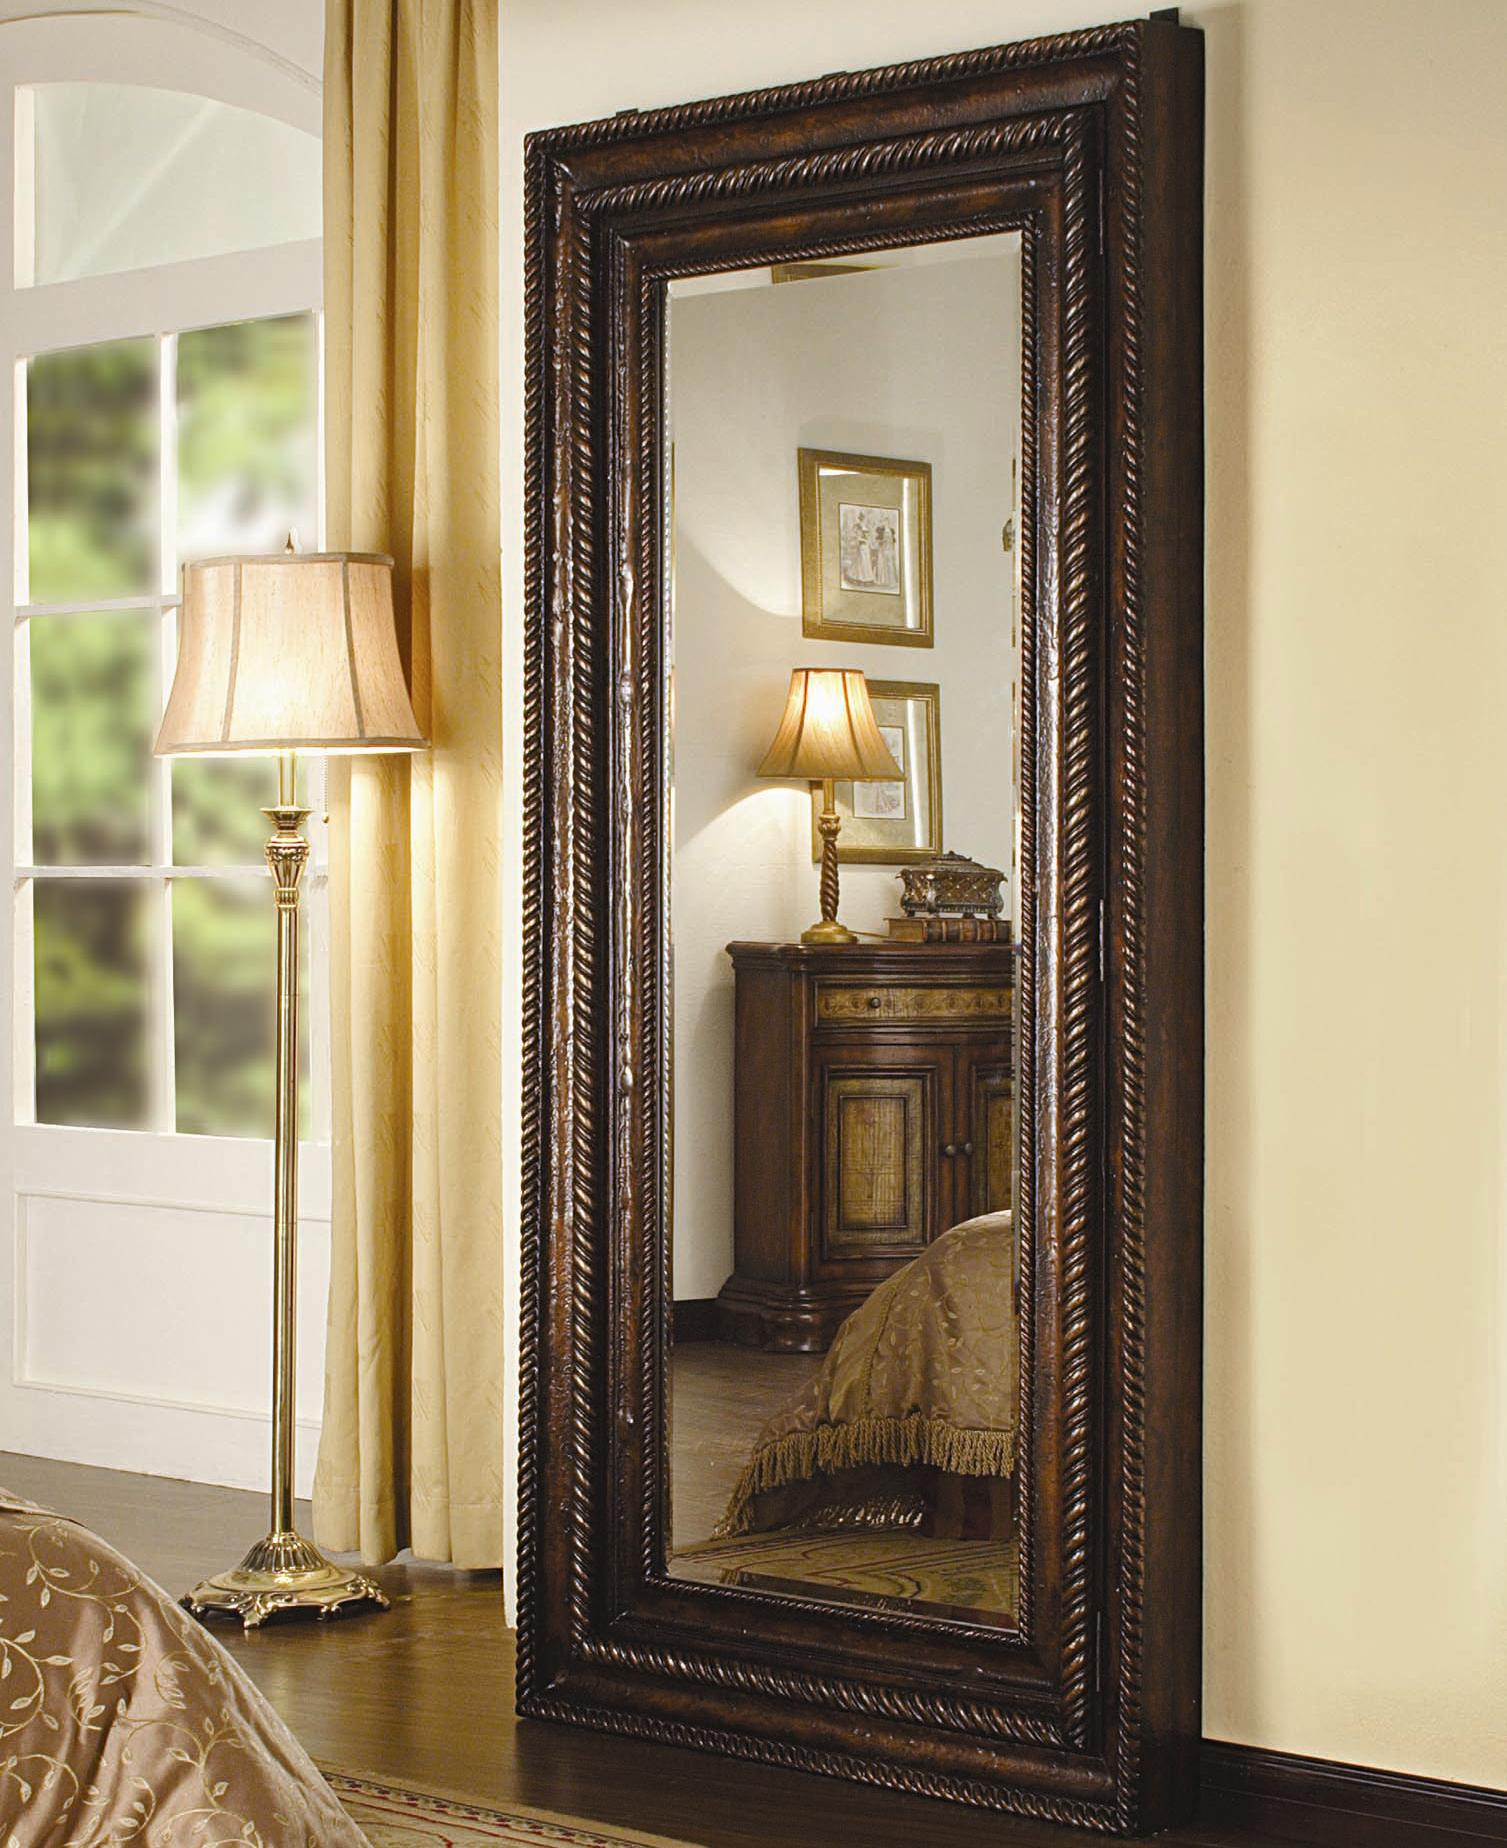 Hooker Furniture Seven Seas Floor Mirror with Jewelry Storage - Item Number: 500-50-656